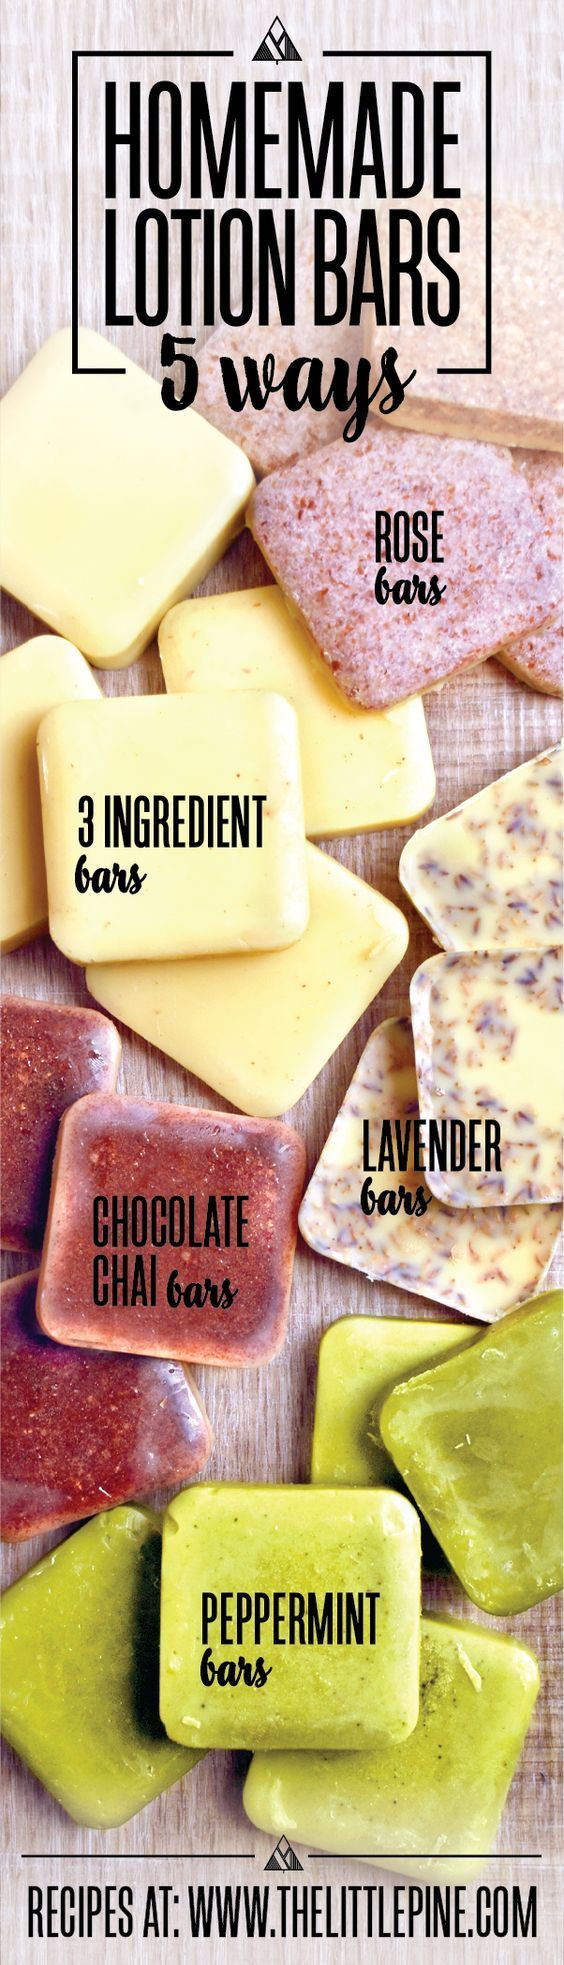 best bath and beauty diy images on pinterest soaps home